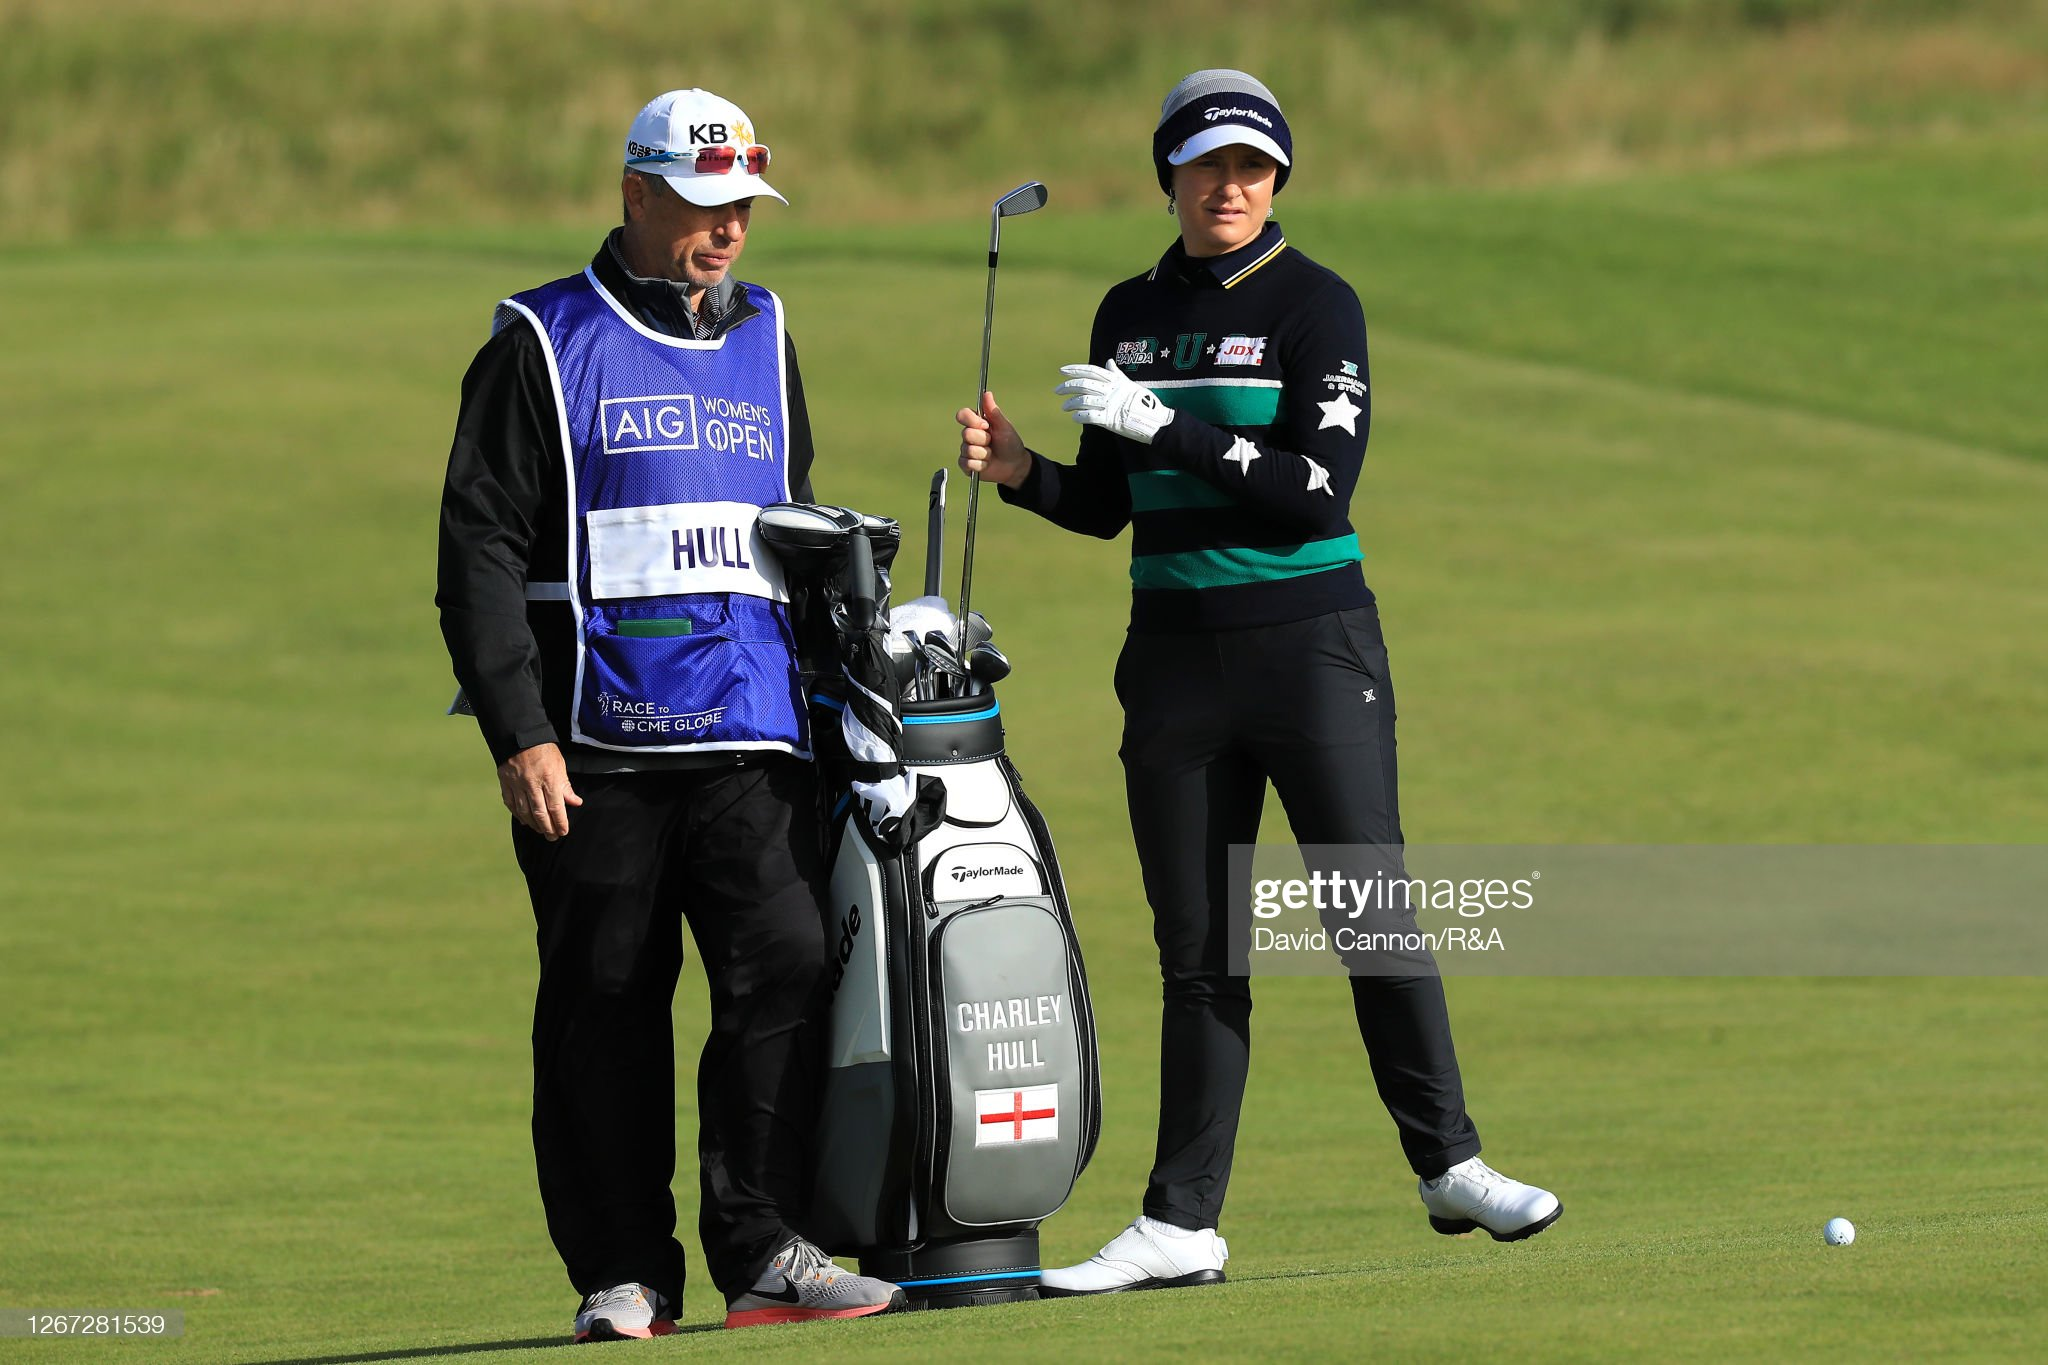 https://media.gettyimages.com/photos/caddie-adam-woodward-and-charleyhull-of-england-look-on-during-day-picture-id1267281539?s=2048x2048